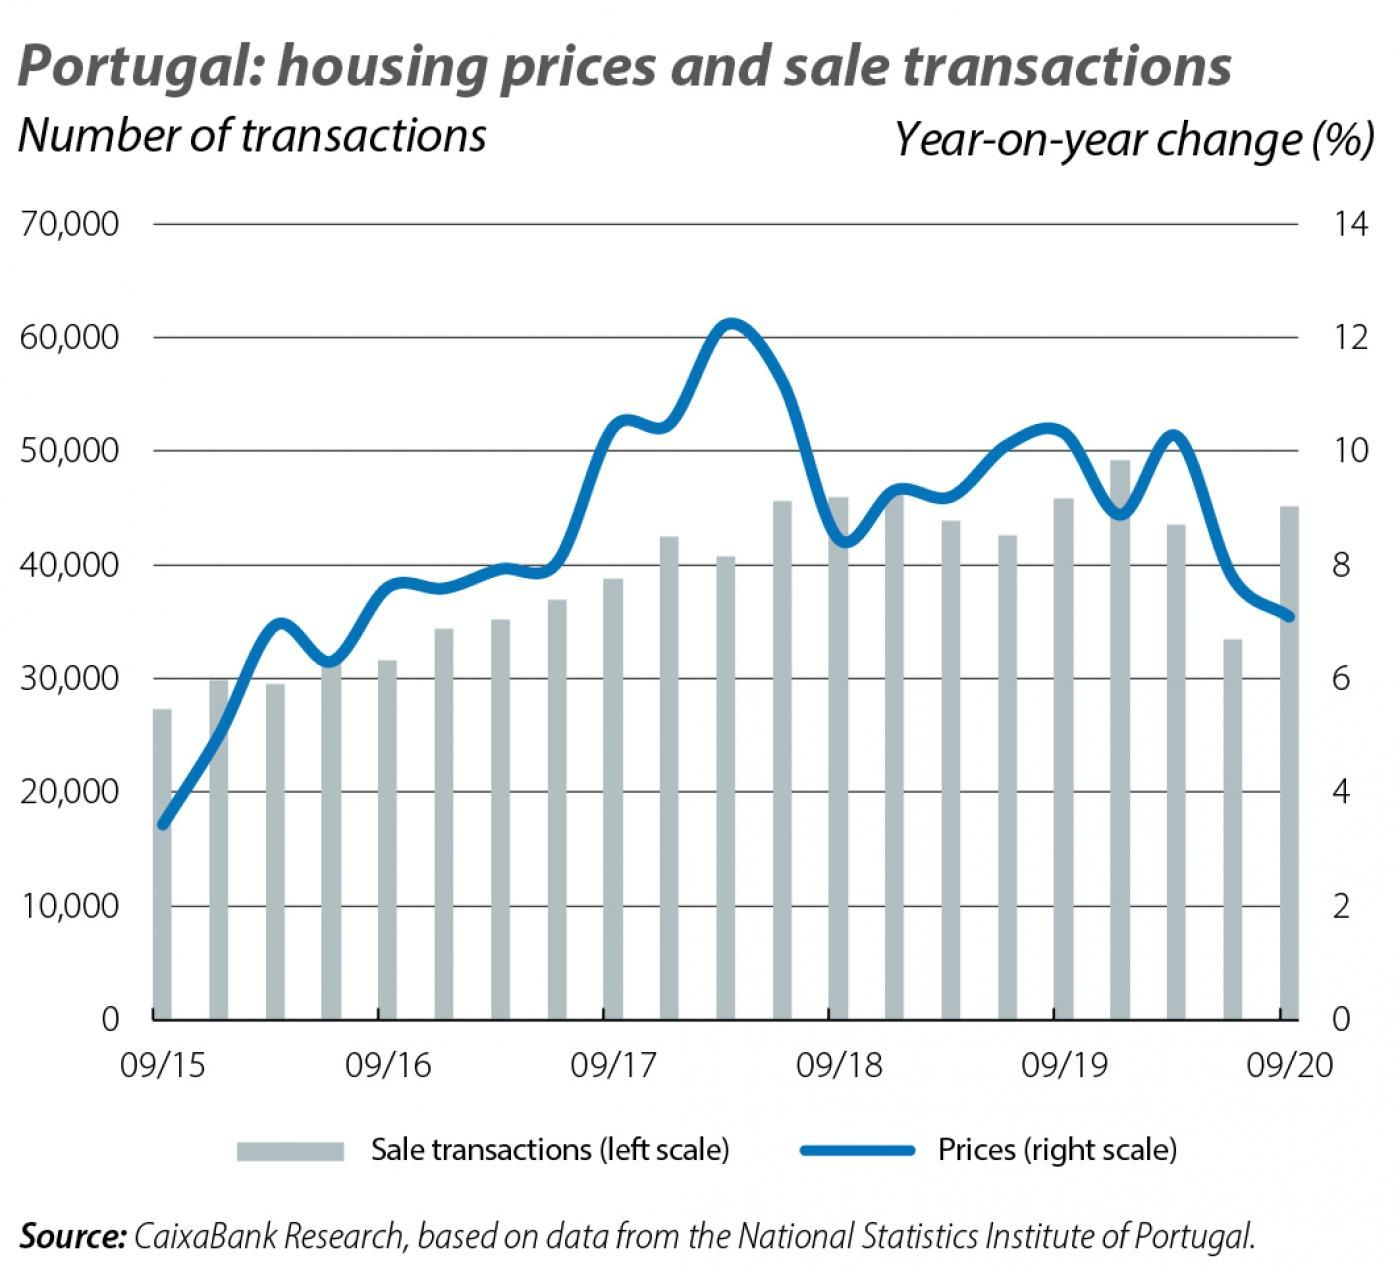 Portugal: housing prices and sale transactions